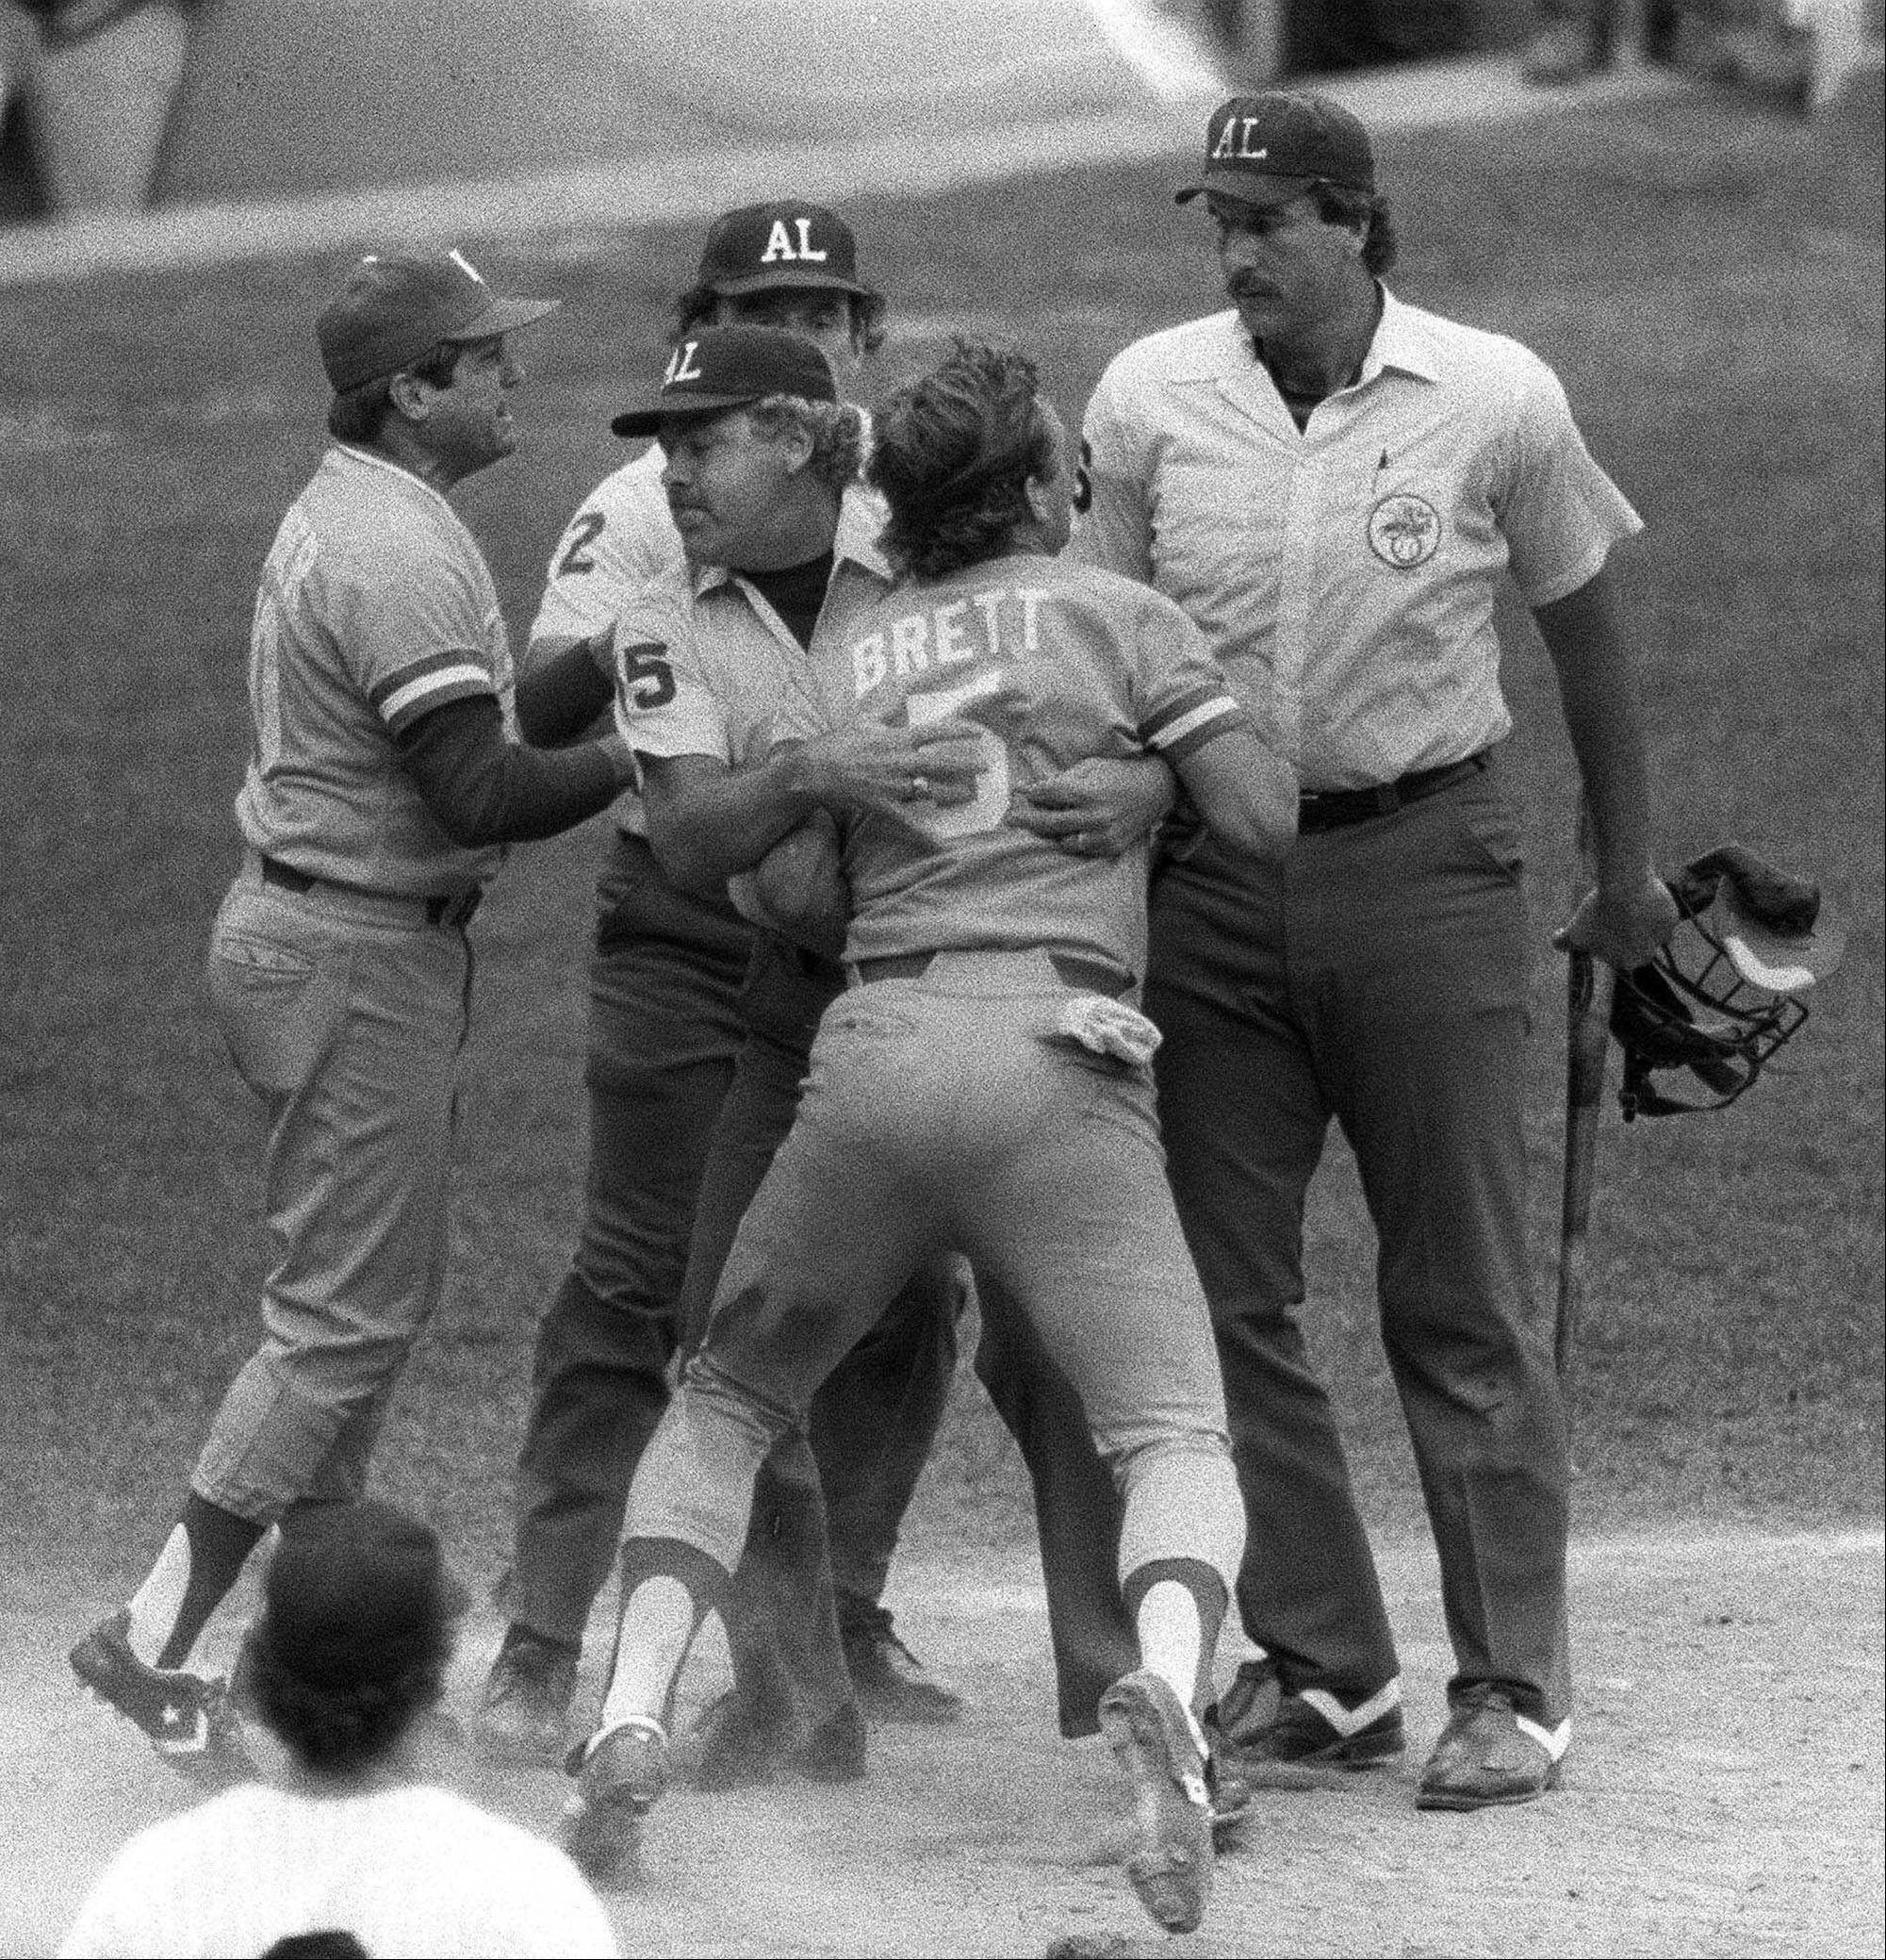 The Royals� George Brett, center, is restrained by umpire Joe Brinkman after his bat, held by umpire Tim McClelland, right, was ruled illegal because of the amount of pine tar on the handle. Brett had hit a home run that would have won the game against the Yankees but was instead called out.